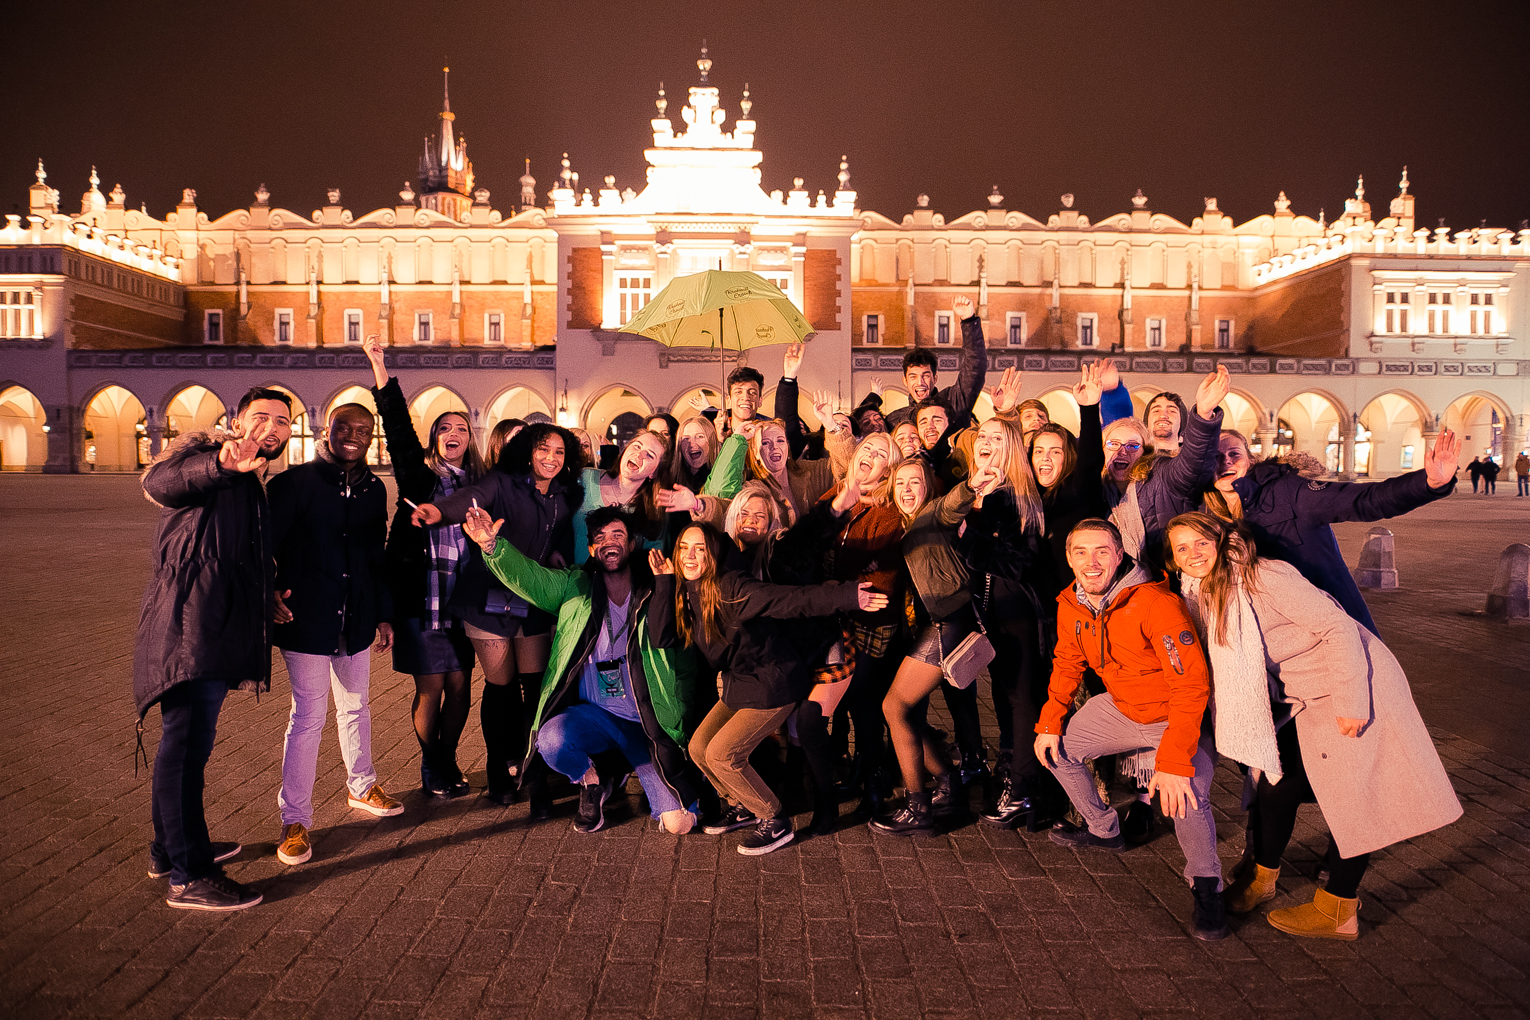 THE DOS AND DONT'S OF PARTYING IN KRAKOW